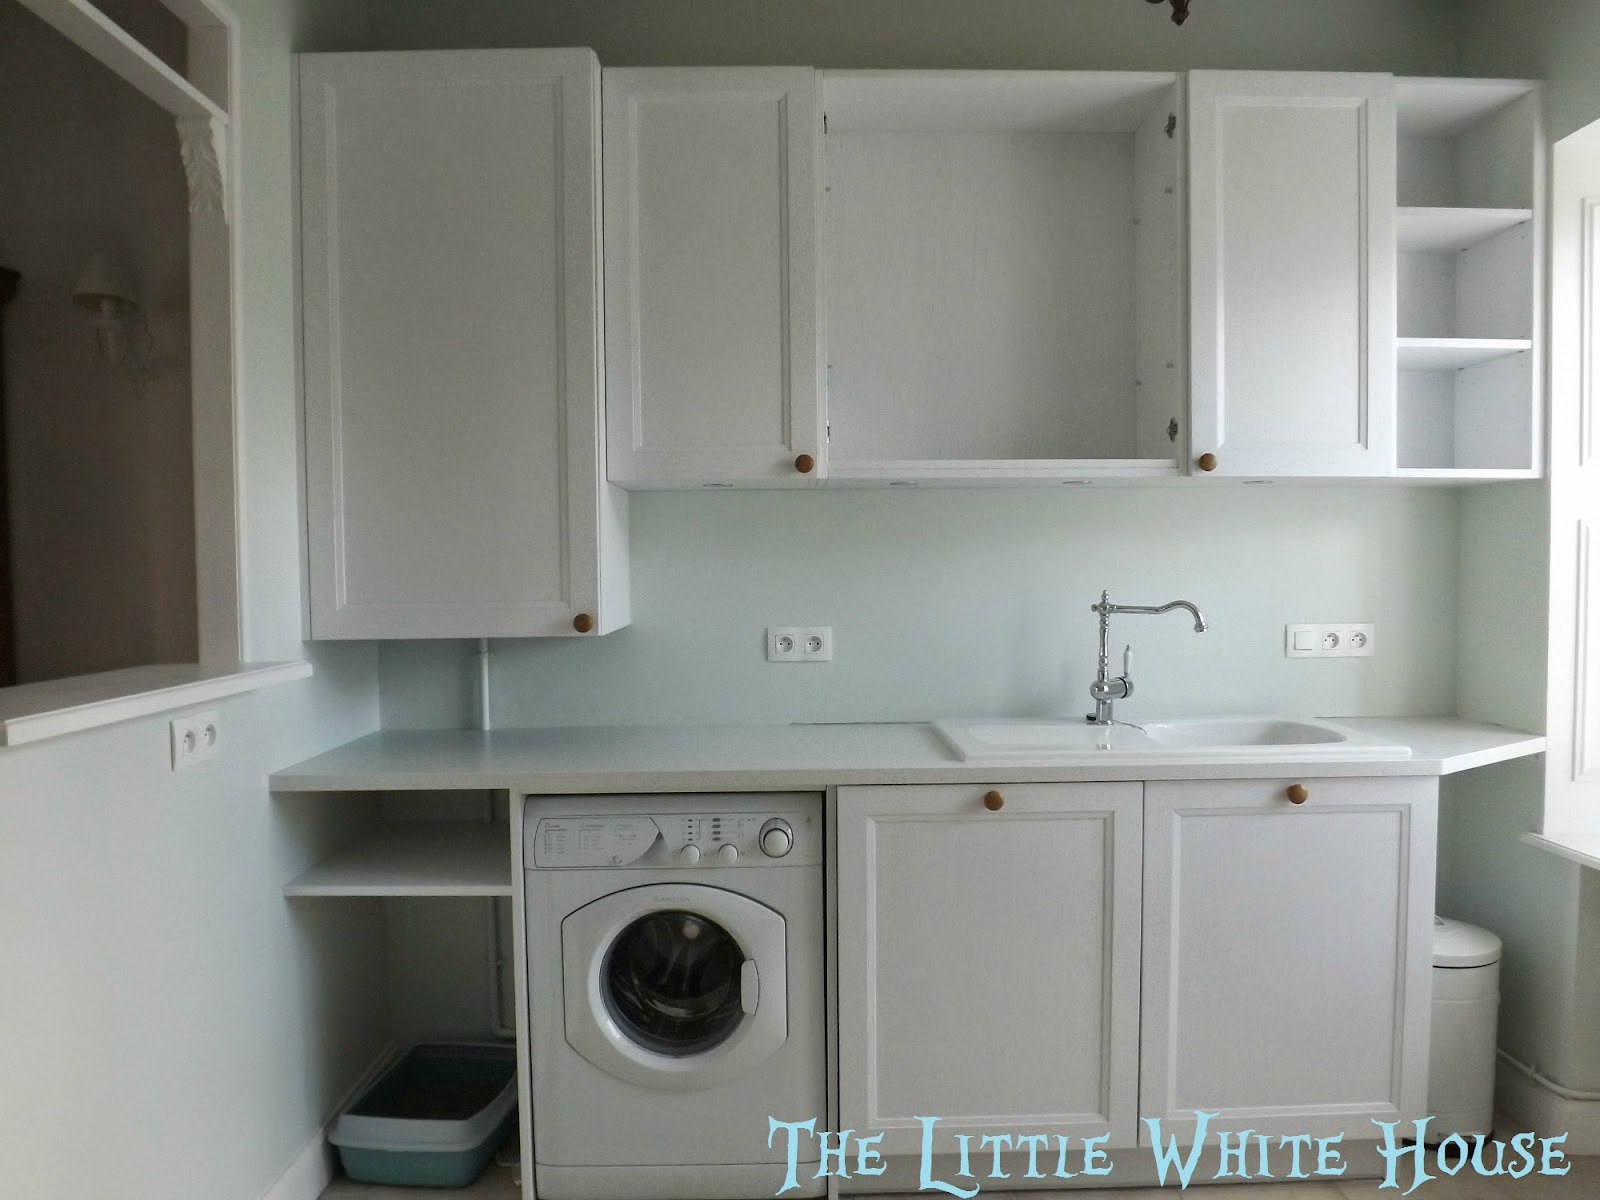 http://thelittlewhitehouseontheseaside.blogspot.fr/2014/05/blank-canvas.html